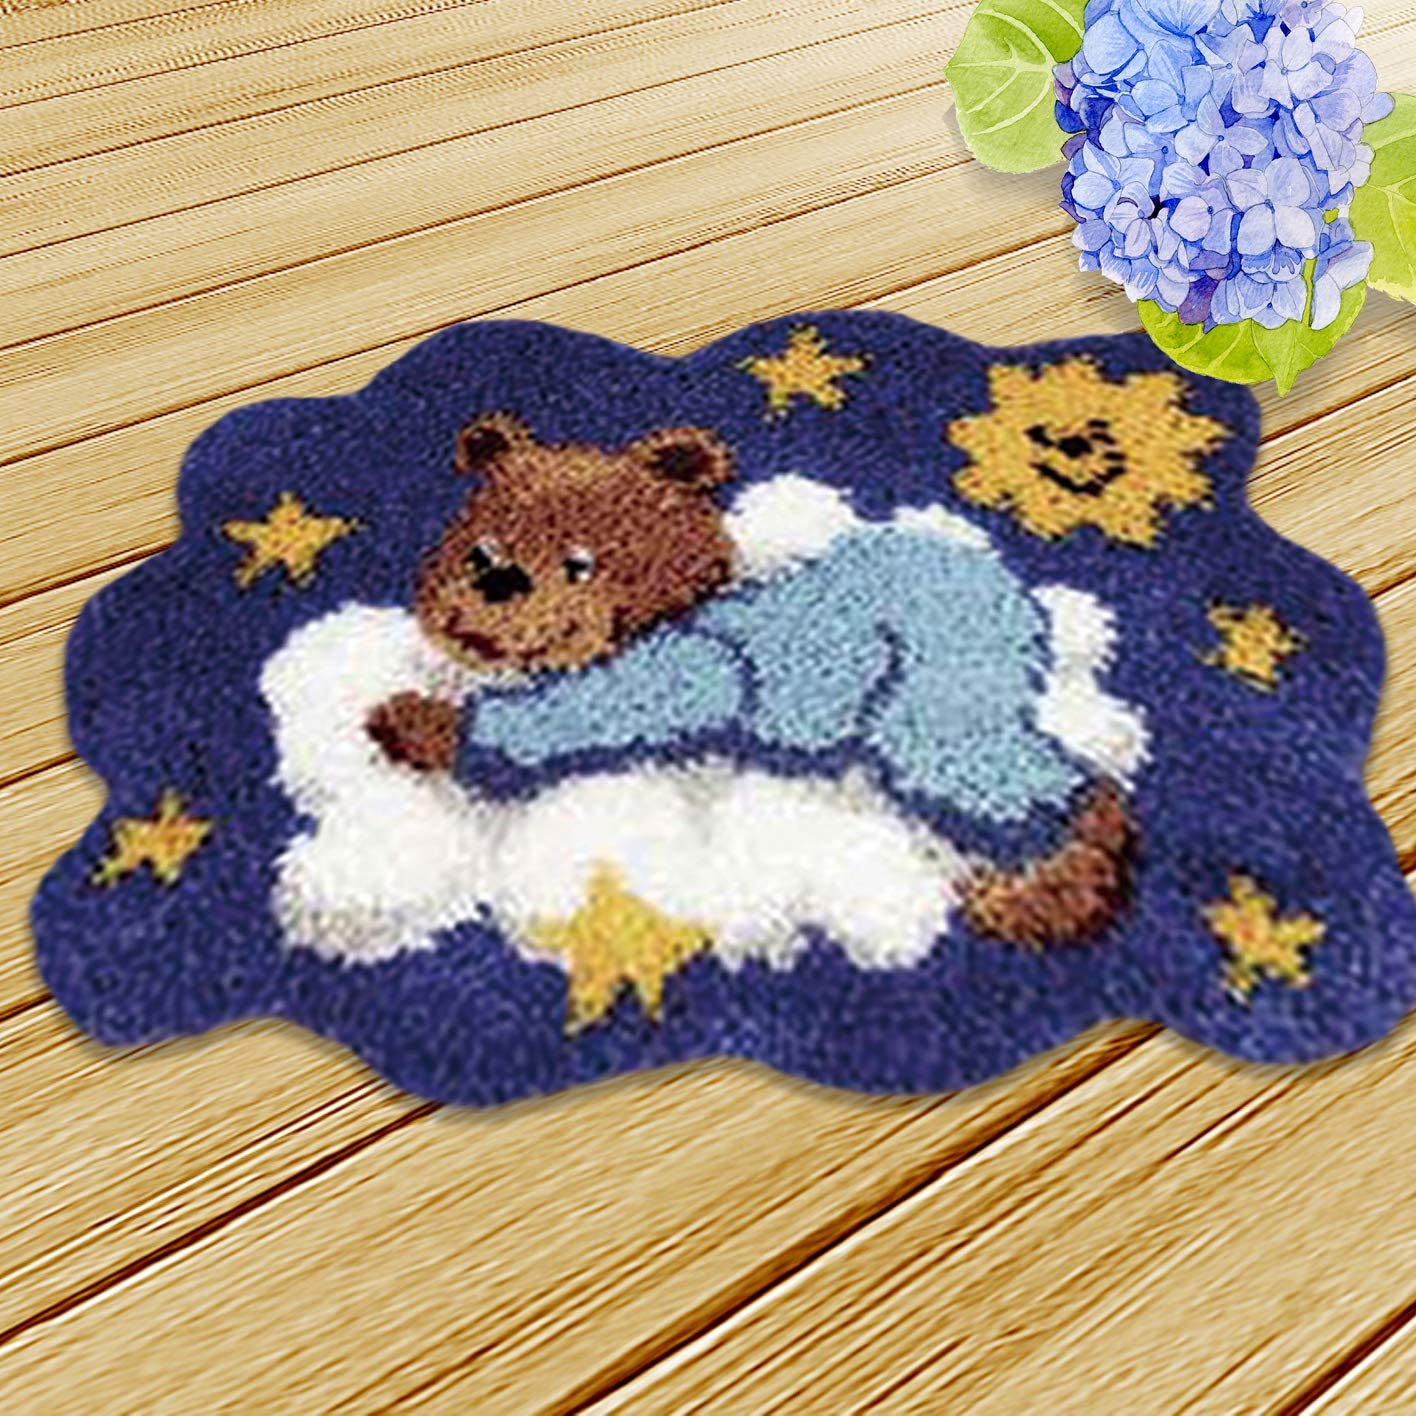 Onebook Animal Pattern Carpet Cushion Latch Hook Kits with Basic Tools DIY Home Ornaments,Making Latch Hooking Kit,Dog Latch Hook Kits Needlework Unfinished Rug,1 Set